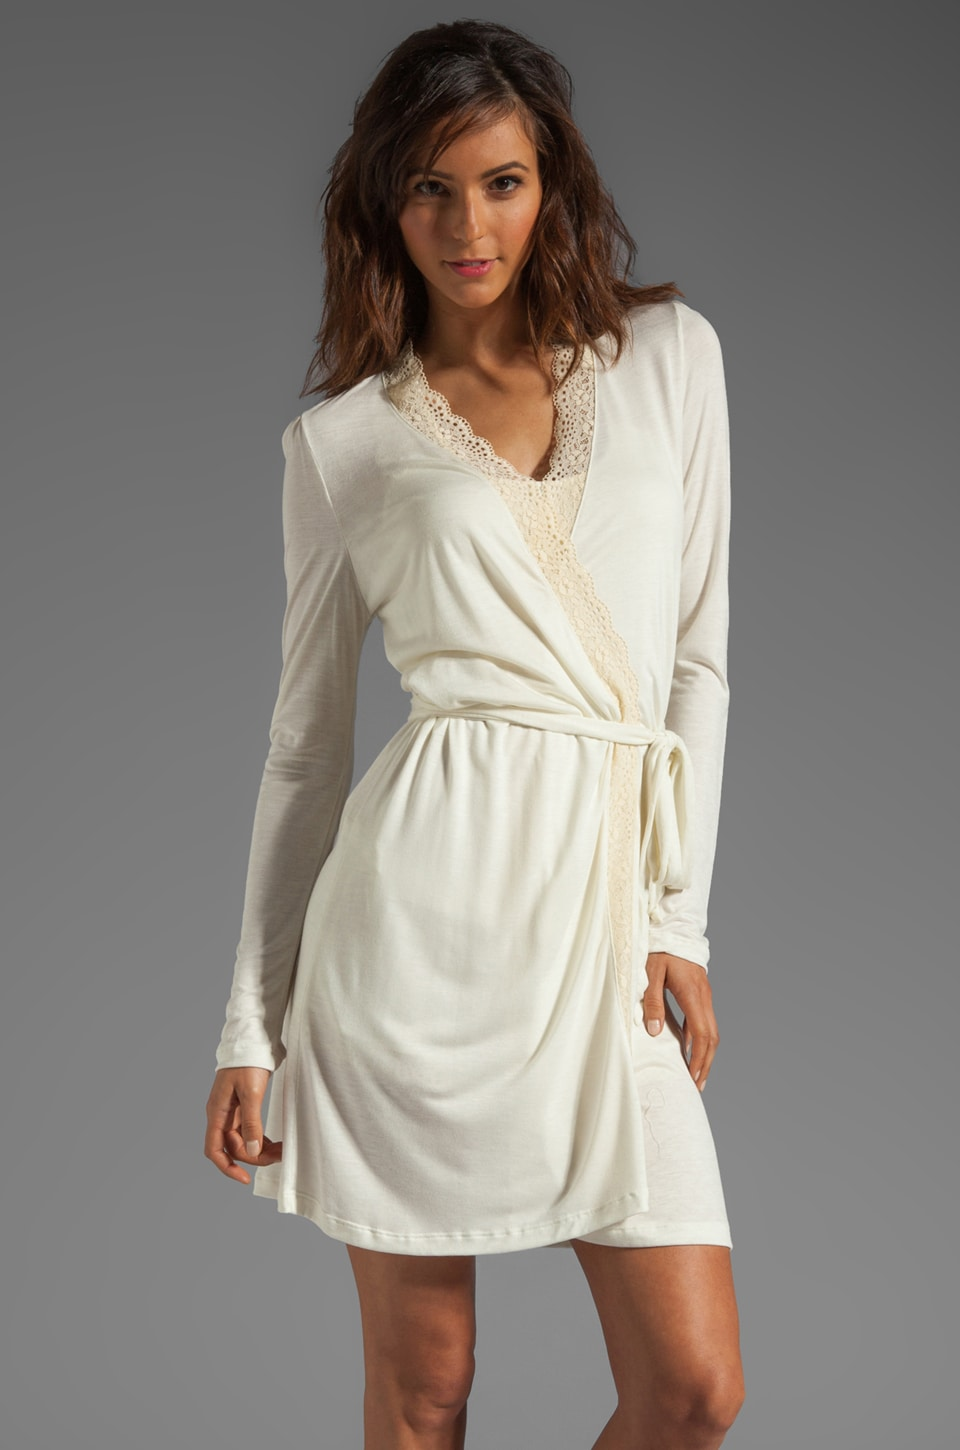 eberjey Crochet Dreams Robe in Ivory